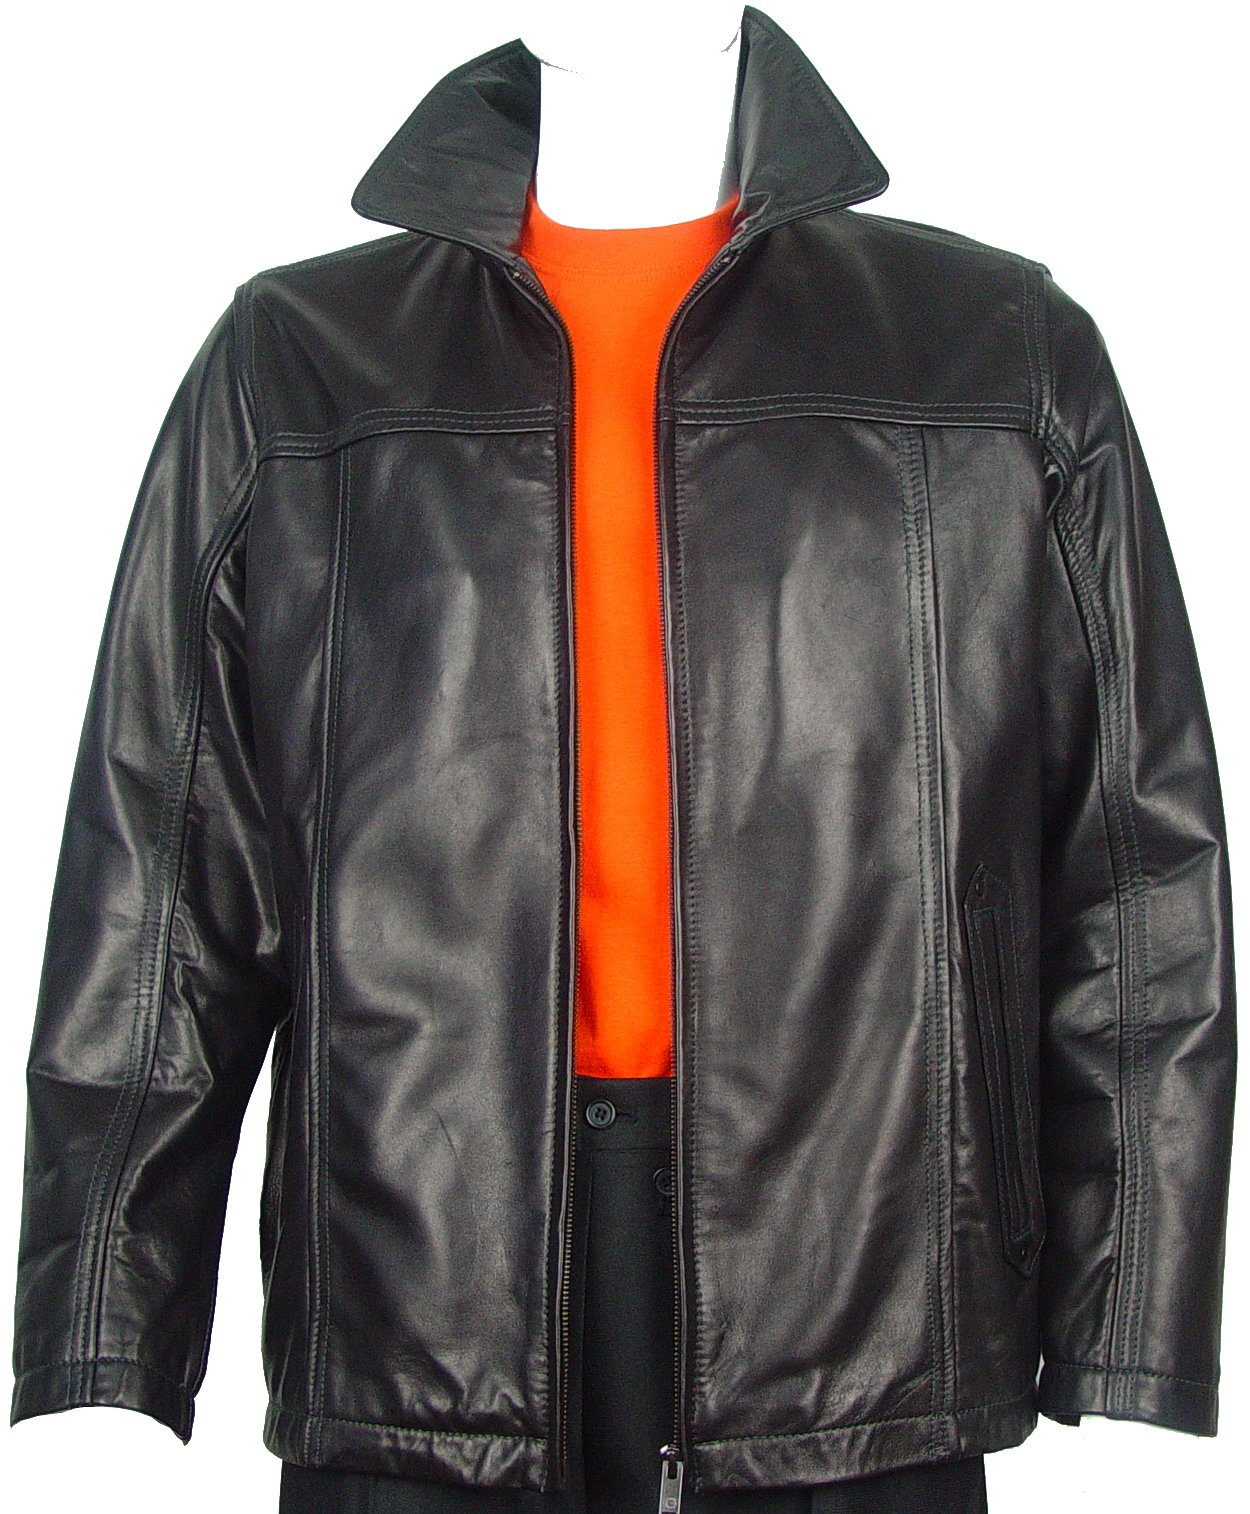 Johnny 1025 Big Man Business Clothing Popular Leather Jacket & Coats All Size